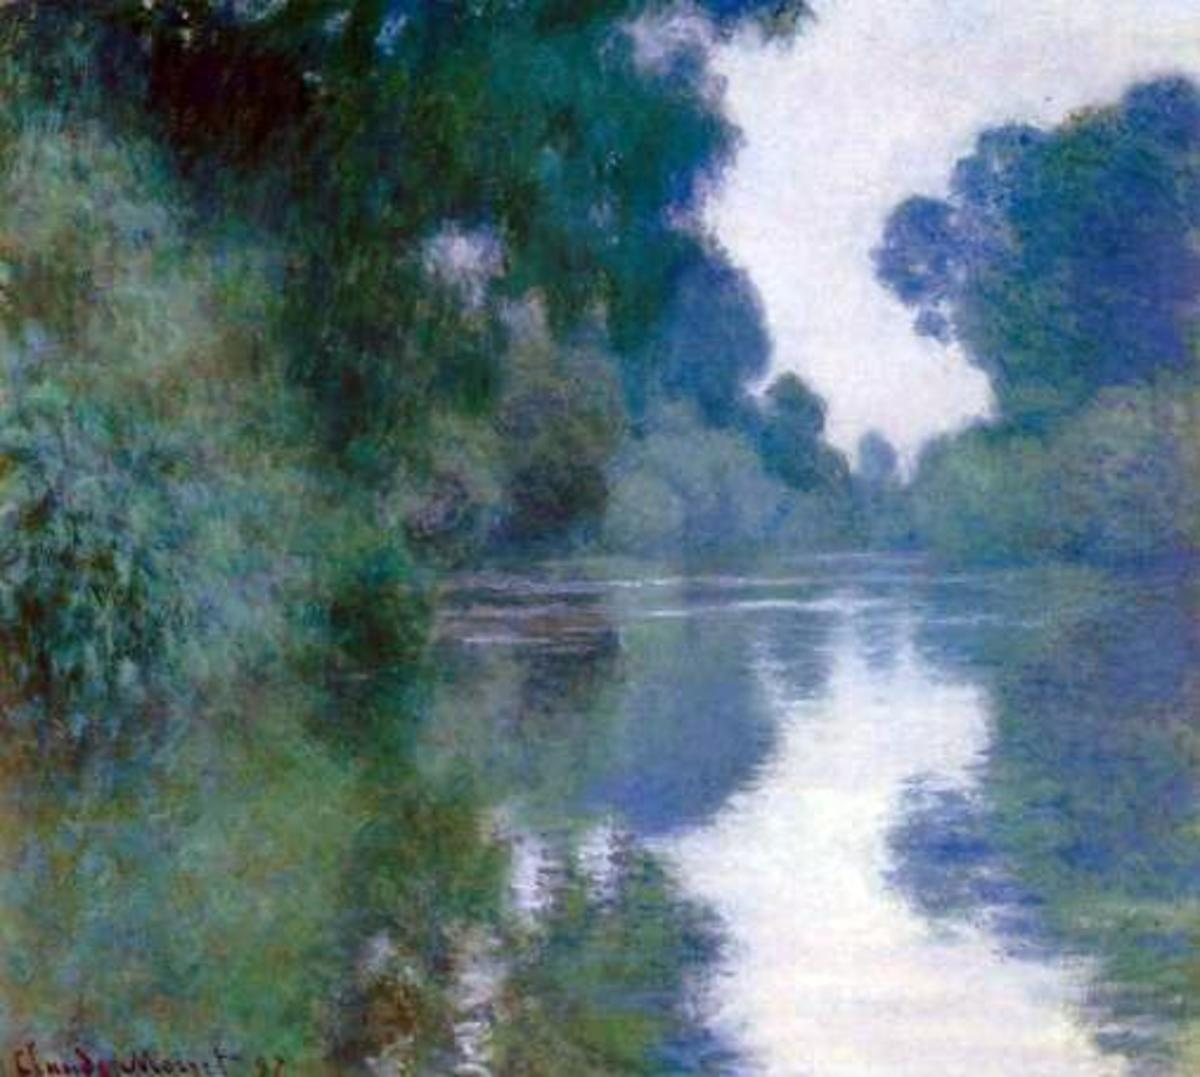 Another painting by Claude Monet with lots of soft and lost edges. The sharpest edges, where the trees meet the sky, are still broken and soft. Monet- Branch of the Seine near Giverny